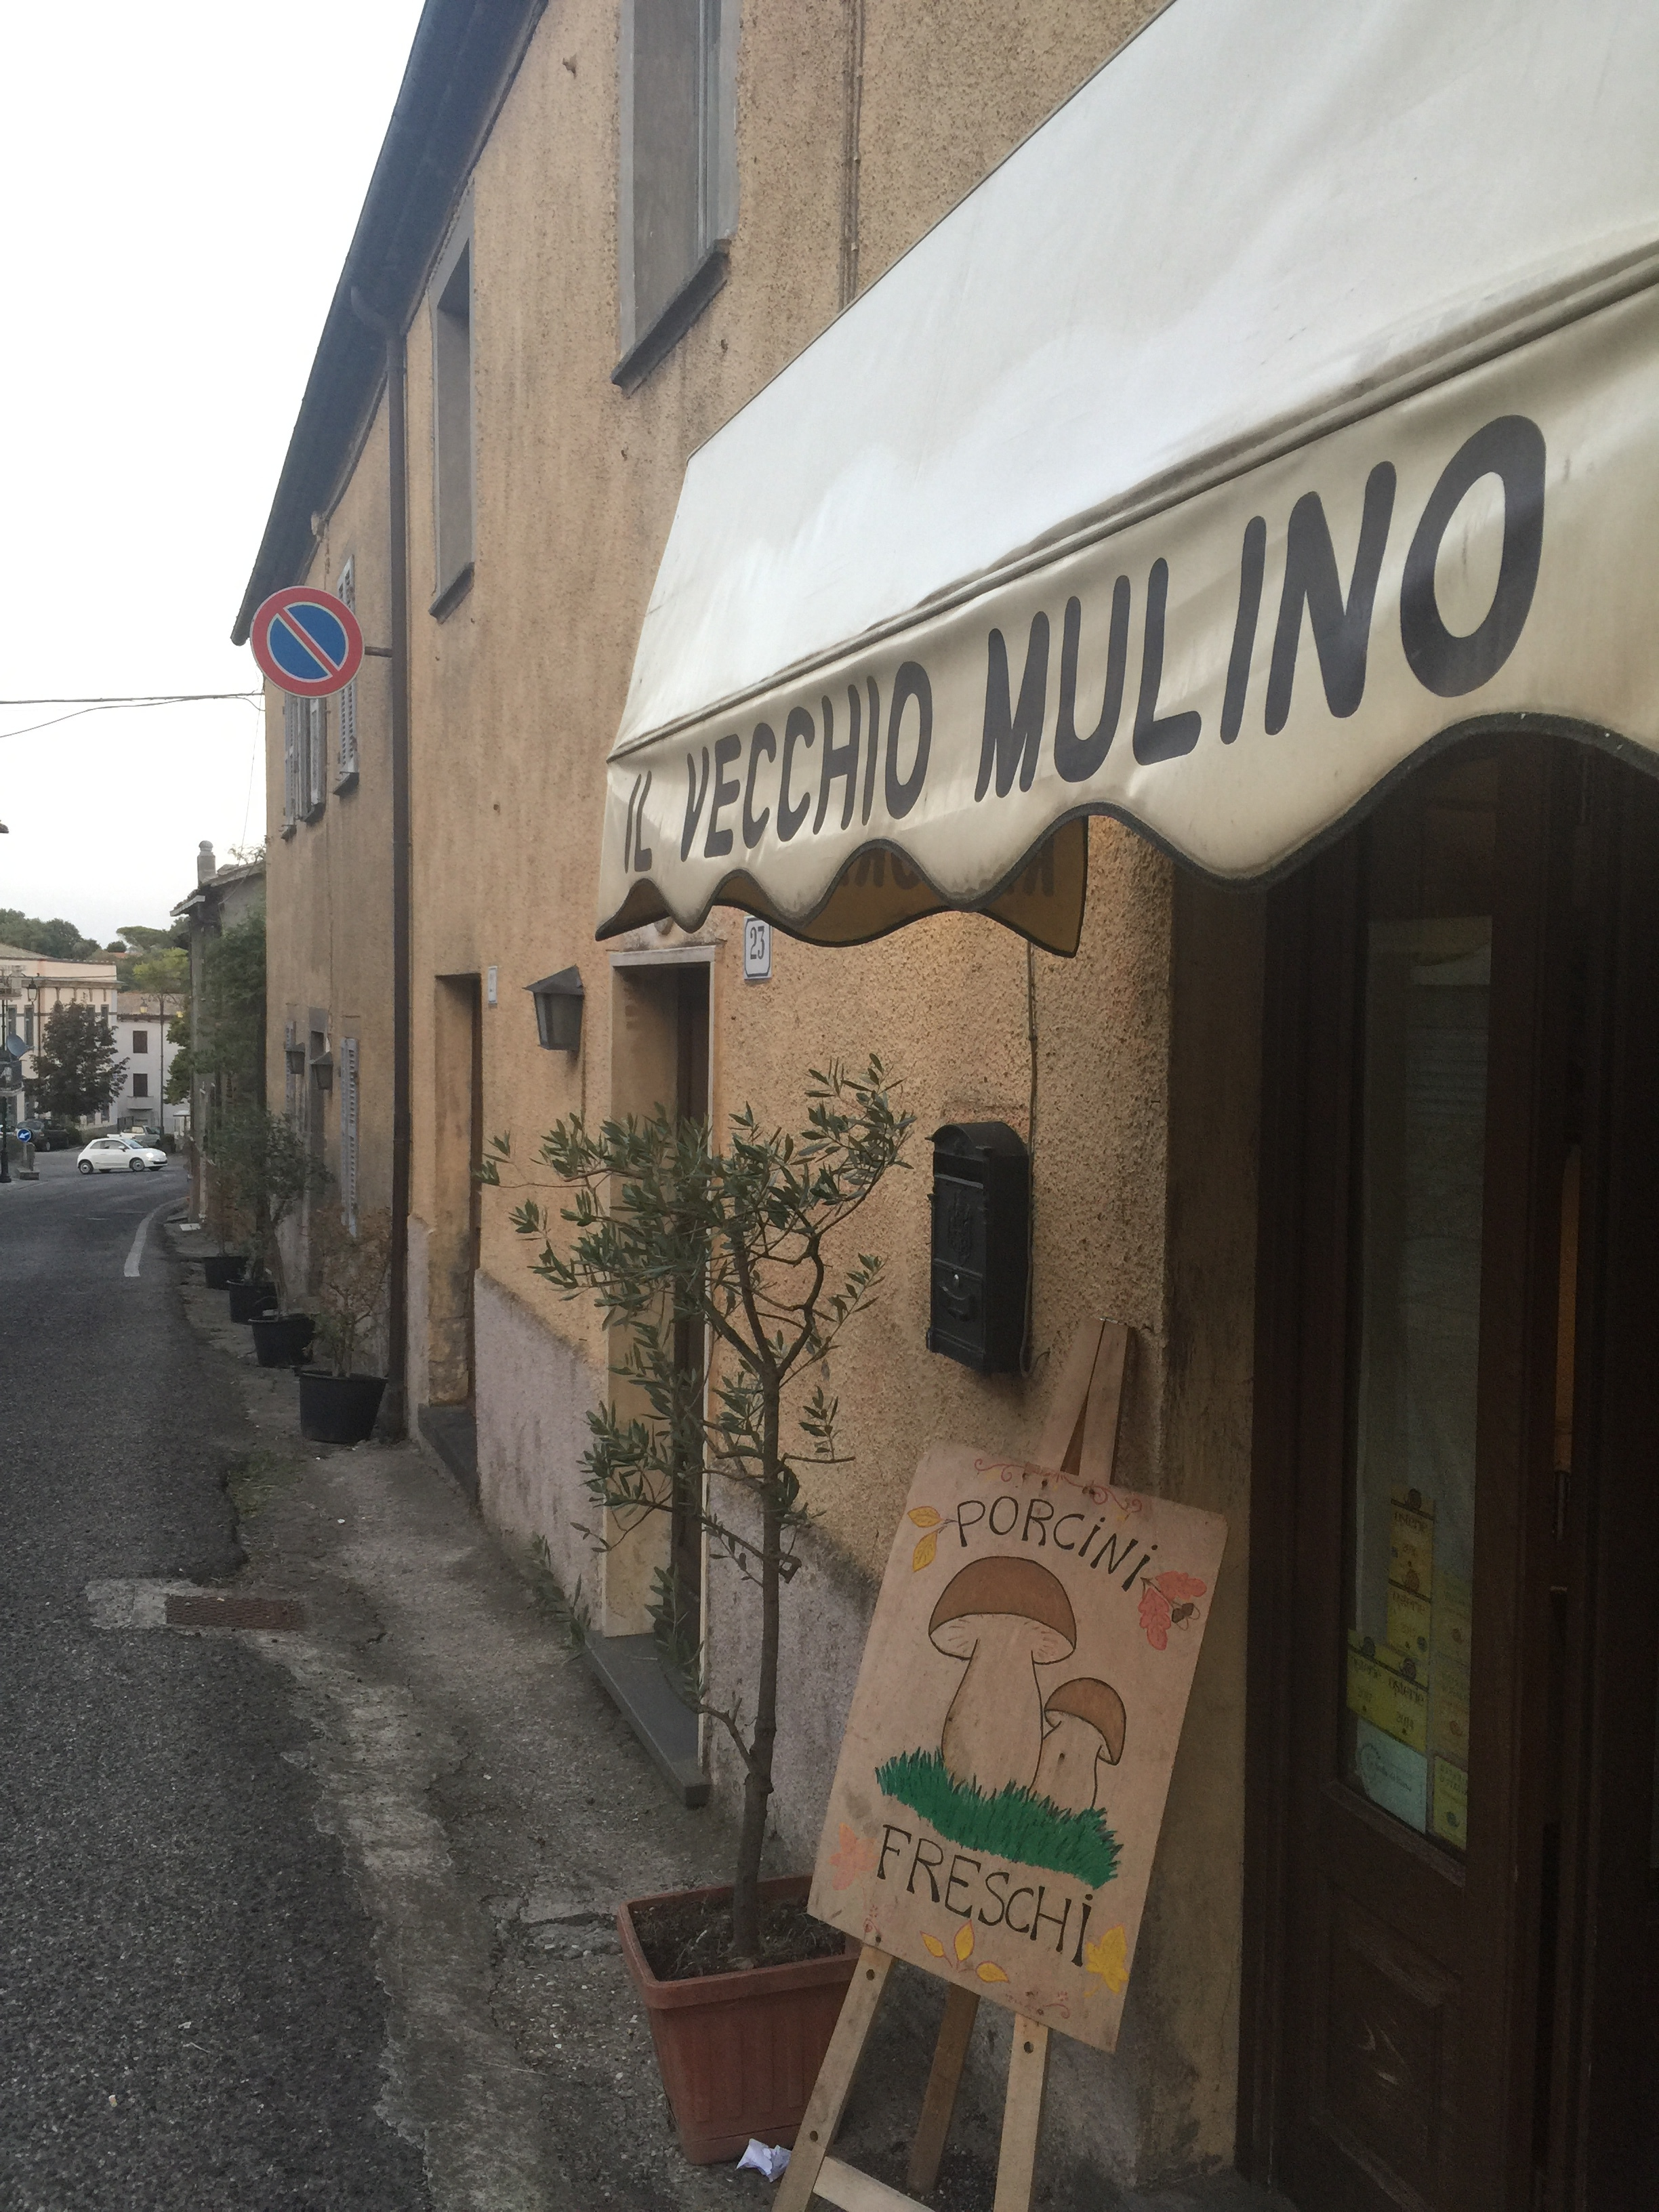 The quaint restaurant Il Vecchio Mulino along Lubriano's main street serving fresh mushroom dishes also pairs them with some of the best vintages of Antinori wines. Great in value as well!(Photo credit: Sumi_Sumilier). D'amico's guest house adjacent to the restaurant charmingly tucked away. (Photo credit: Sumi_Sumilier)